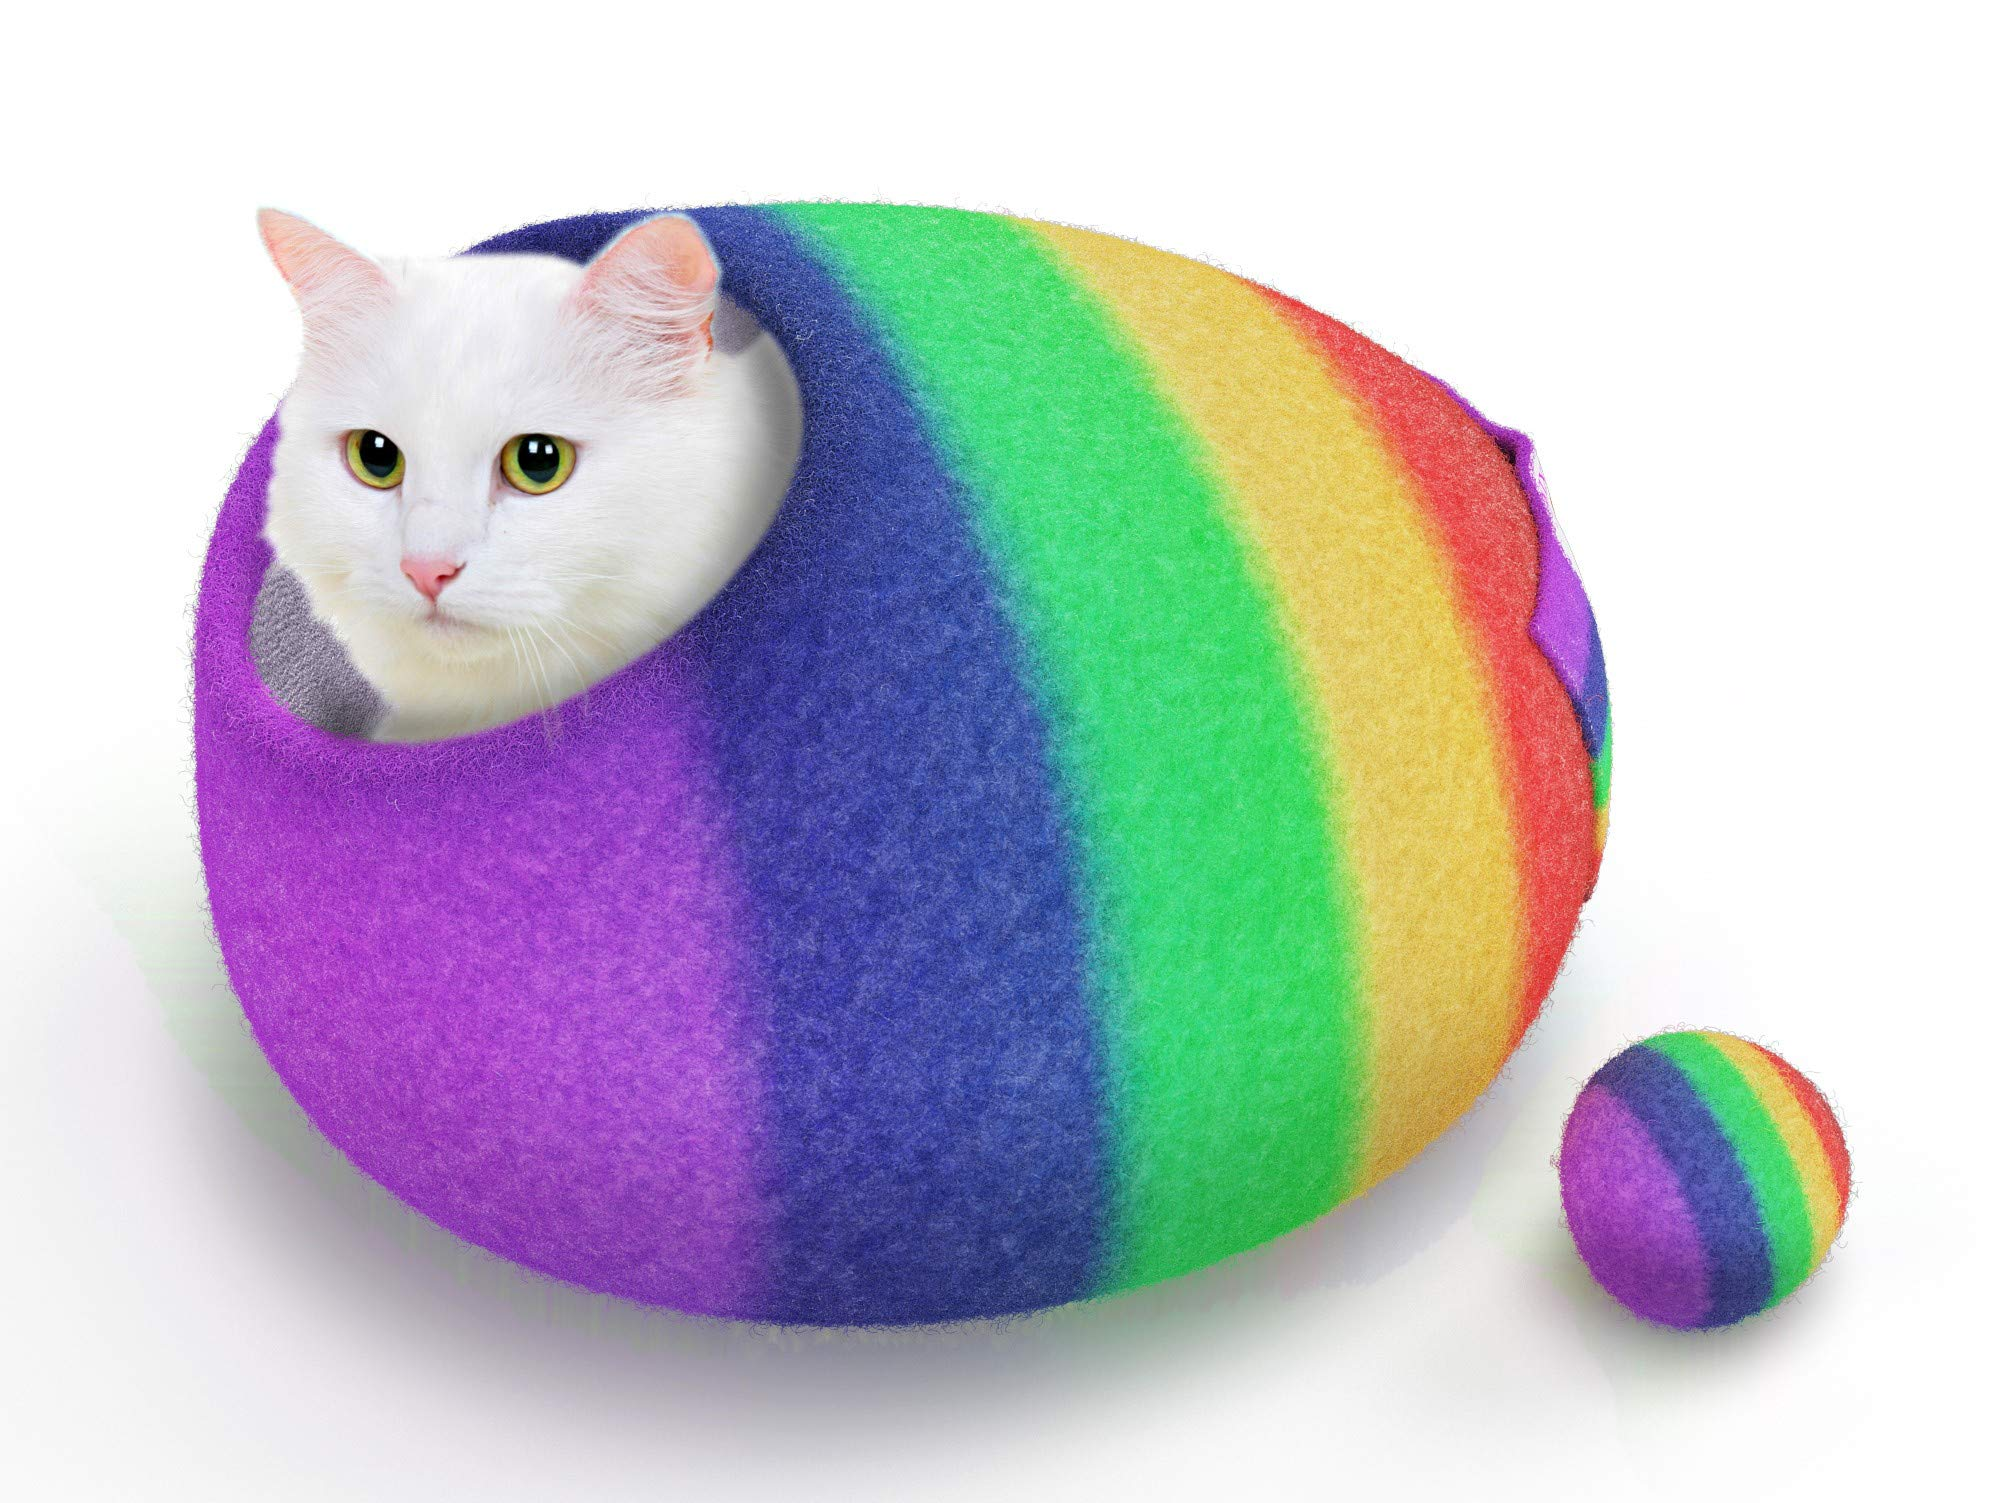 TWIXIE-PIXIE Premium Luxury Felt Cat Cave Bed (Large) -Handmade with Soft 100% Merino Wool -Keeps Warm in the Winter and Cool in the Summer -Thick Firm Shape -Included Felt Ball Cat Toy and Travel Bag by TWIXIE-PIXIE